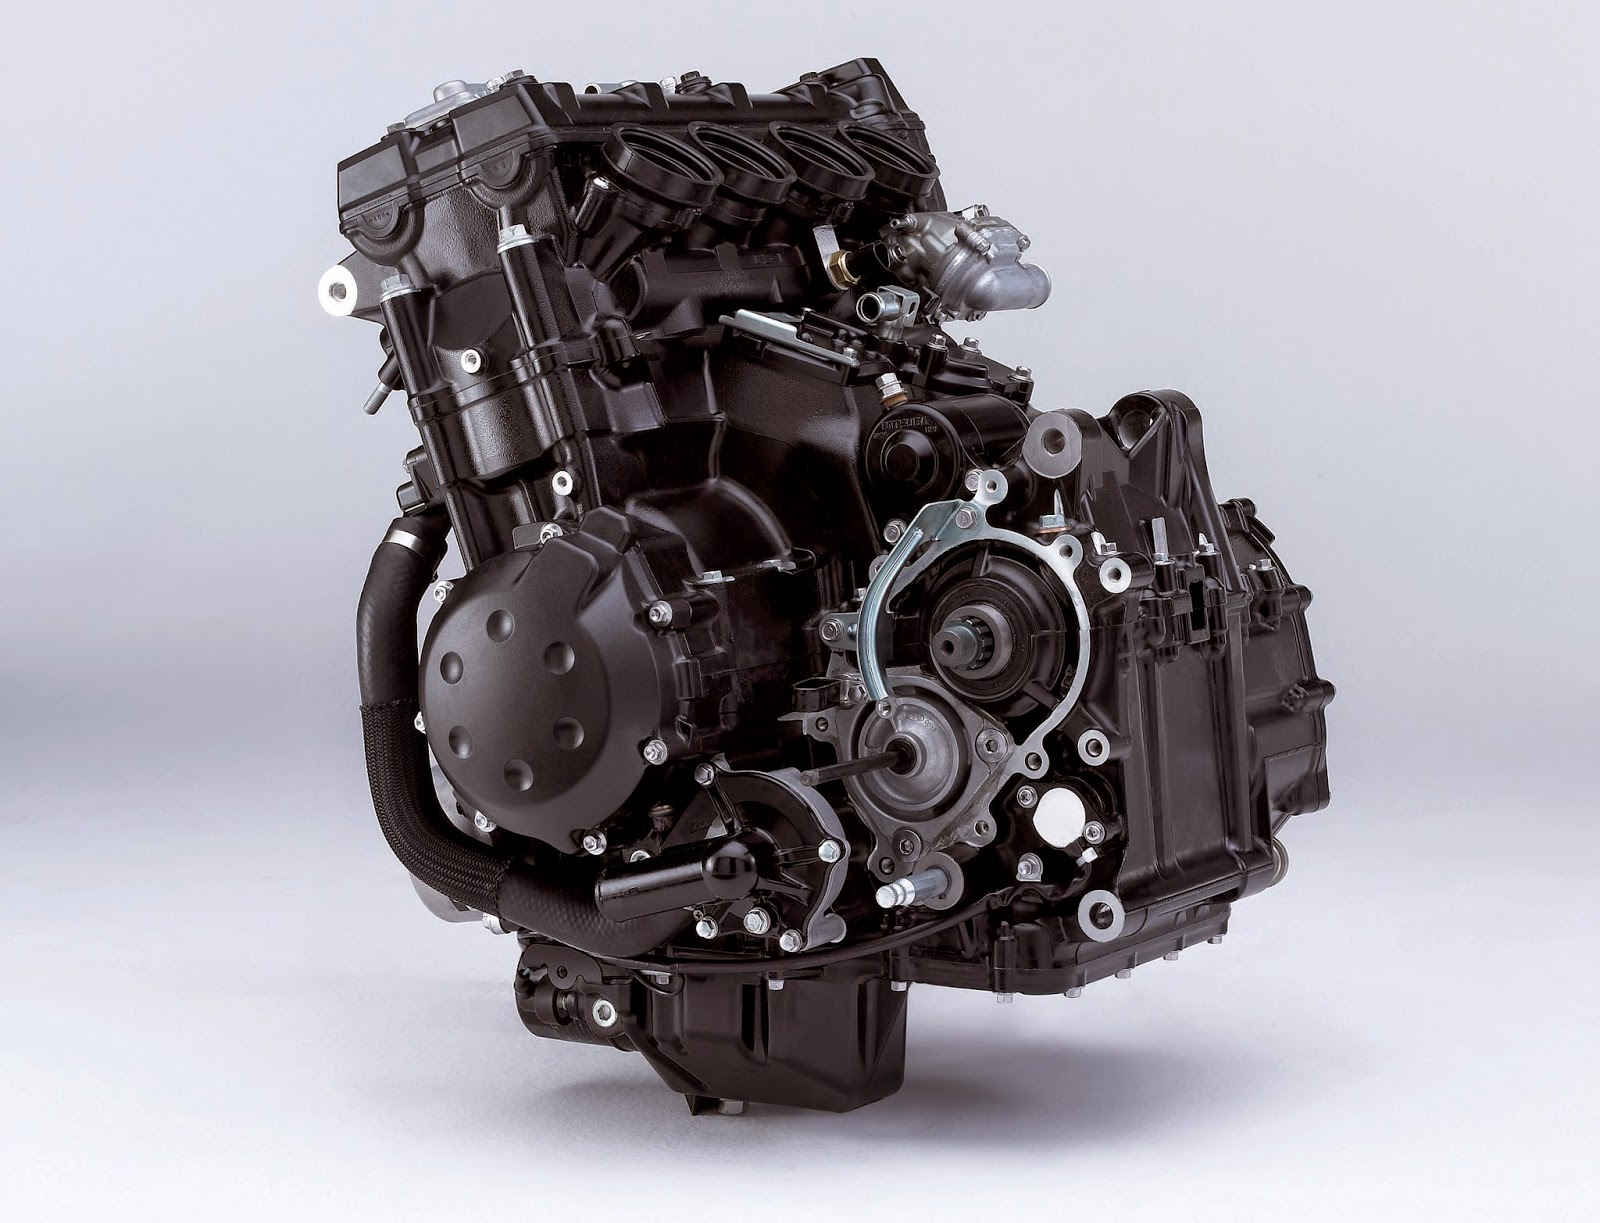 Bikers Movement The Way We Live Top 10 Most Powerful Motorcycle Engine Engines Of 2015